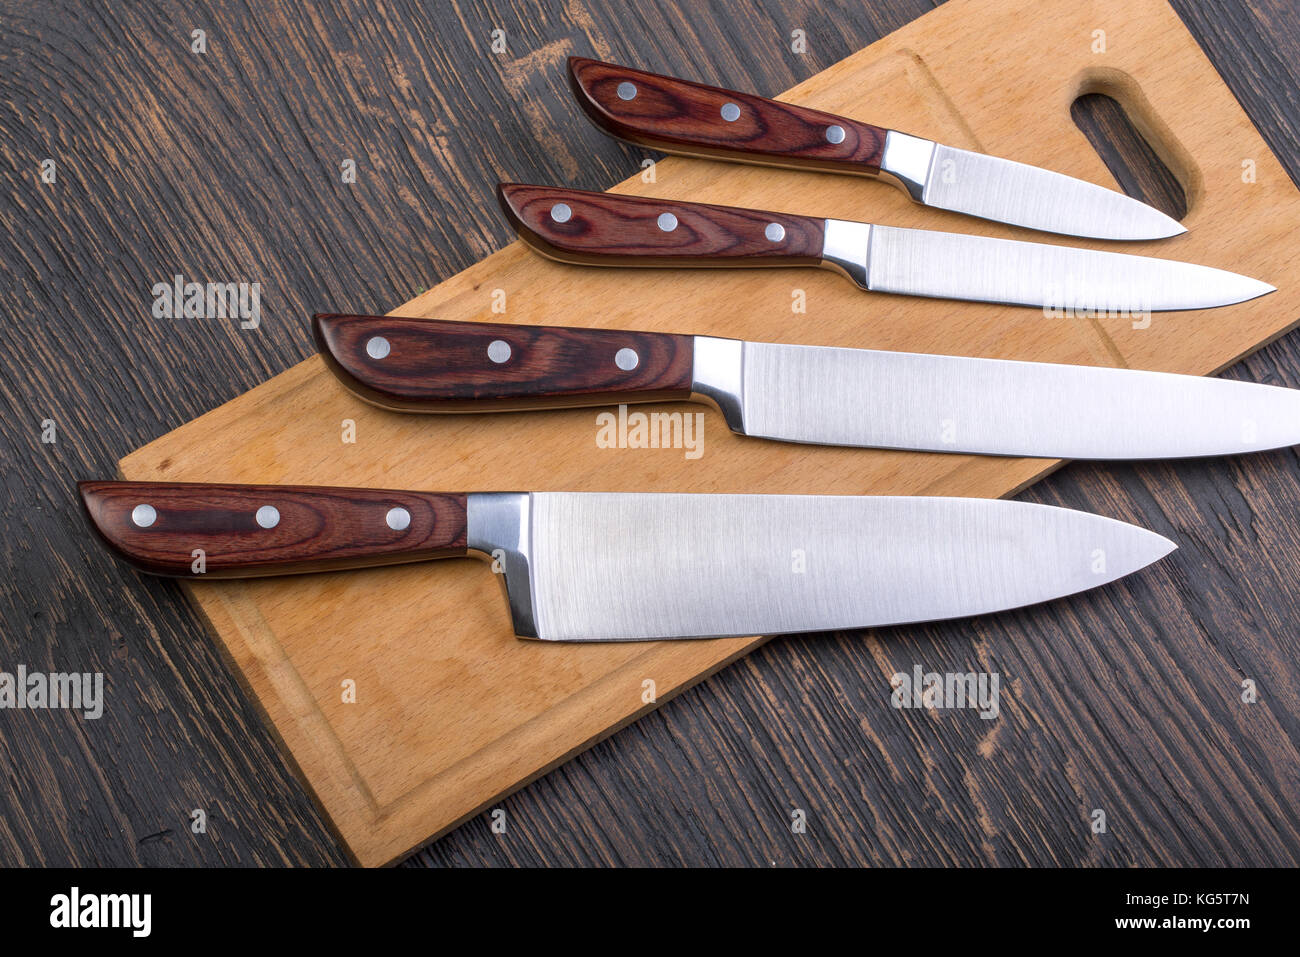 High Quality Cutlery Sets Sharpen Knives Stock Photos And Sharpen Knives Stock Images